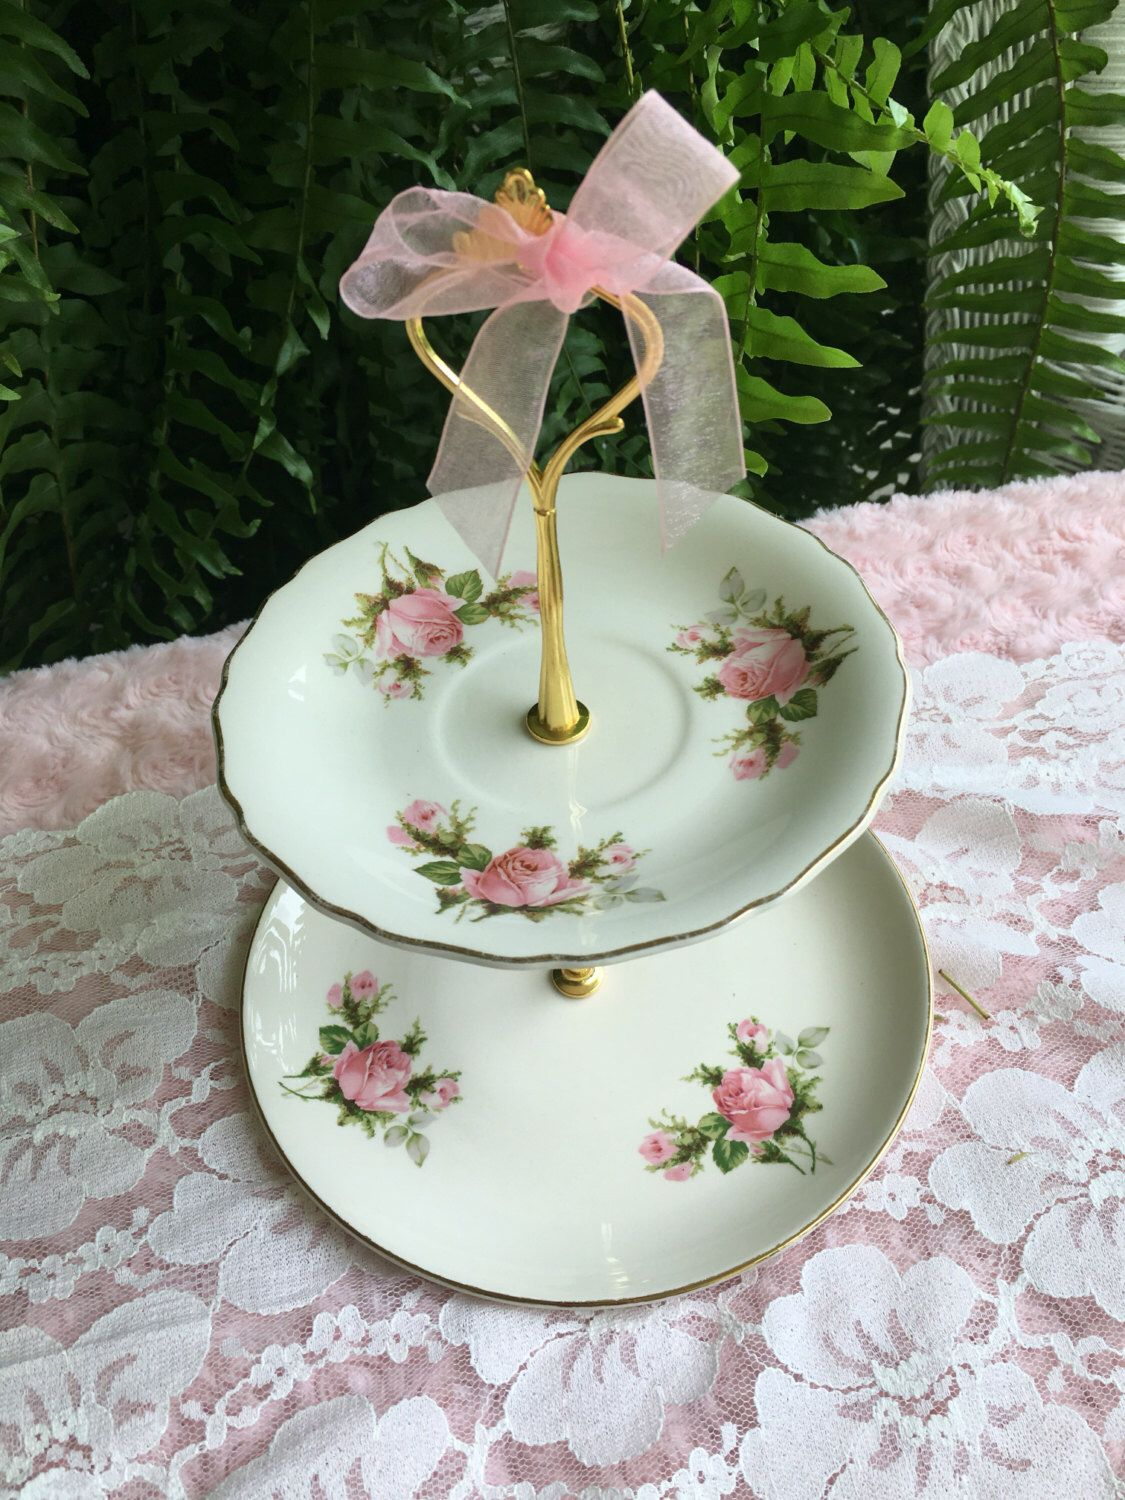 Vintage Plate 2 Tiered Pink Rose Dessert Stand & Vintage Plate 2 Tiered Pink Rose Dessert Stand | Vintage plates ...